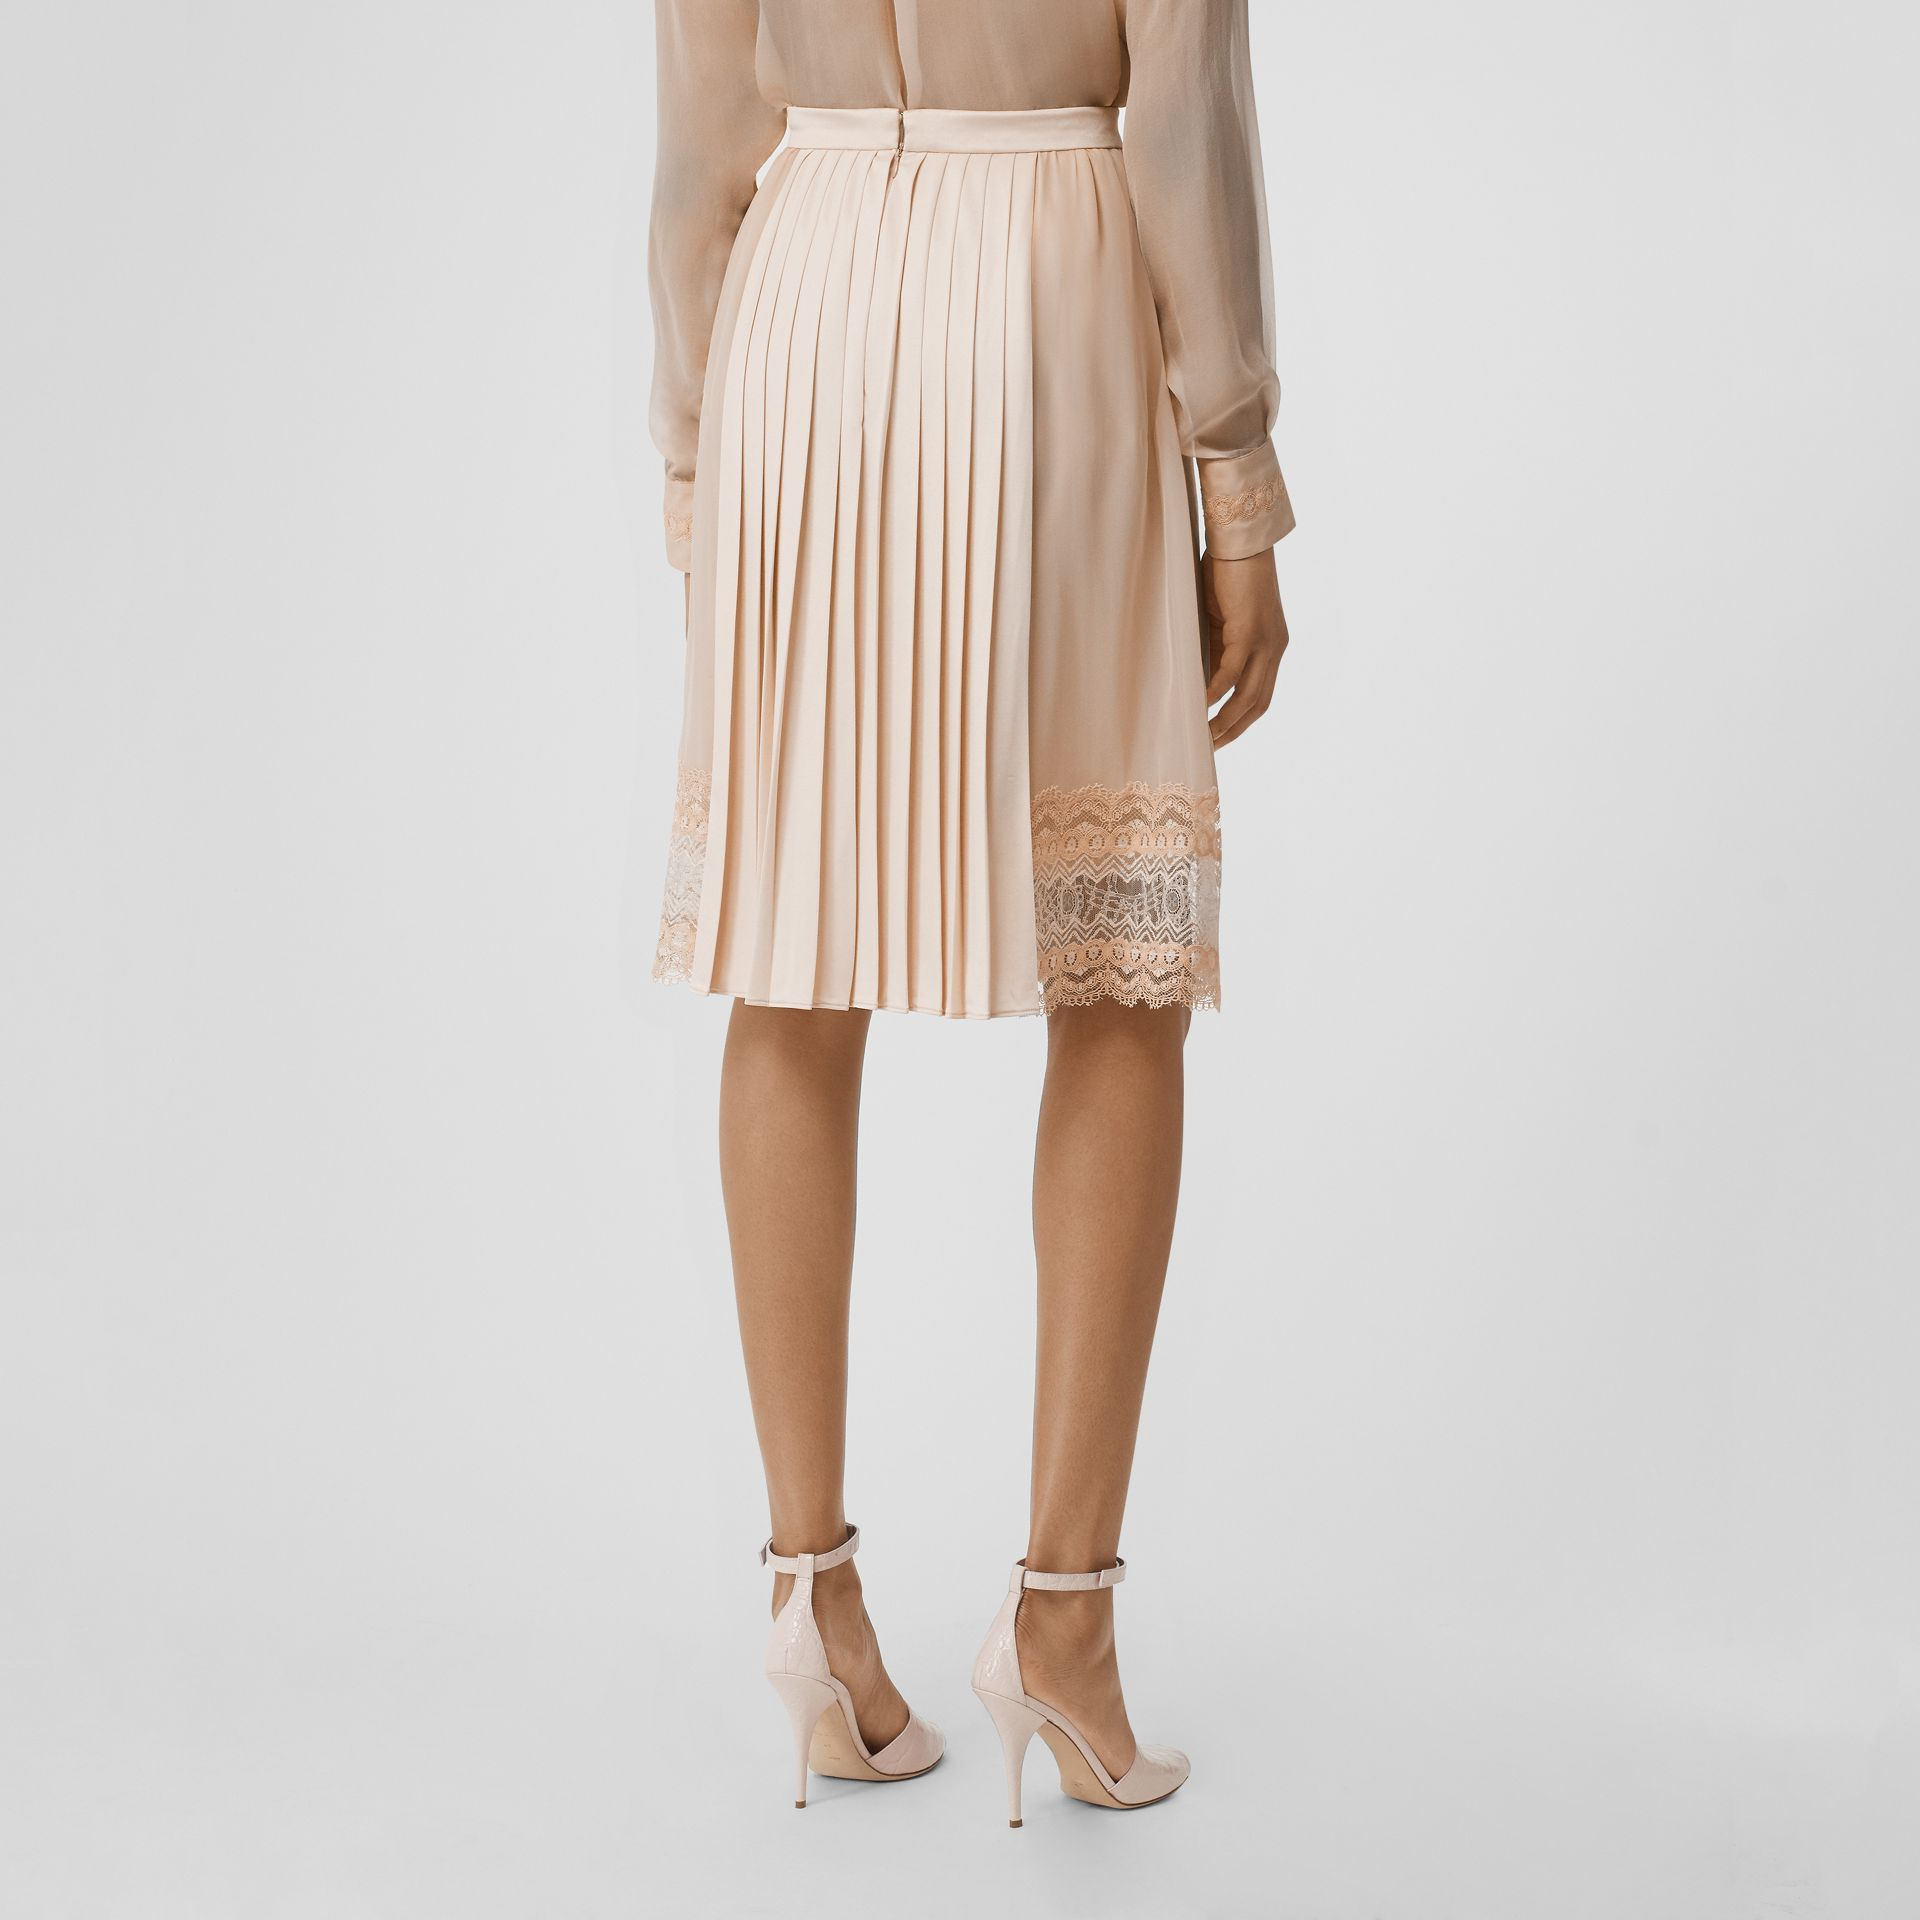 Lace Detail Silk Panel Pleated Skirt in Soft Peach - Women | Burberry Australia - gallery image 4